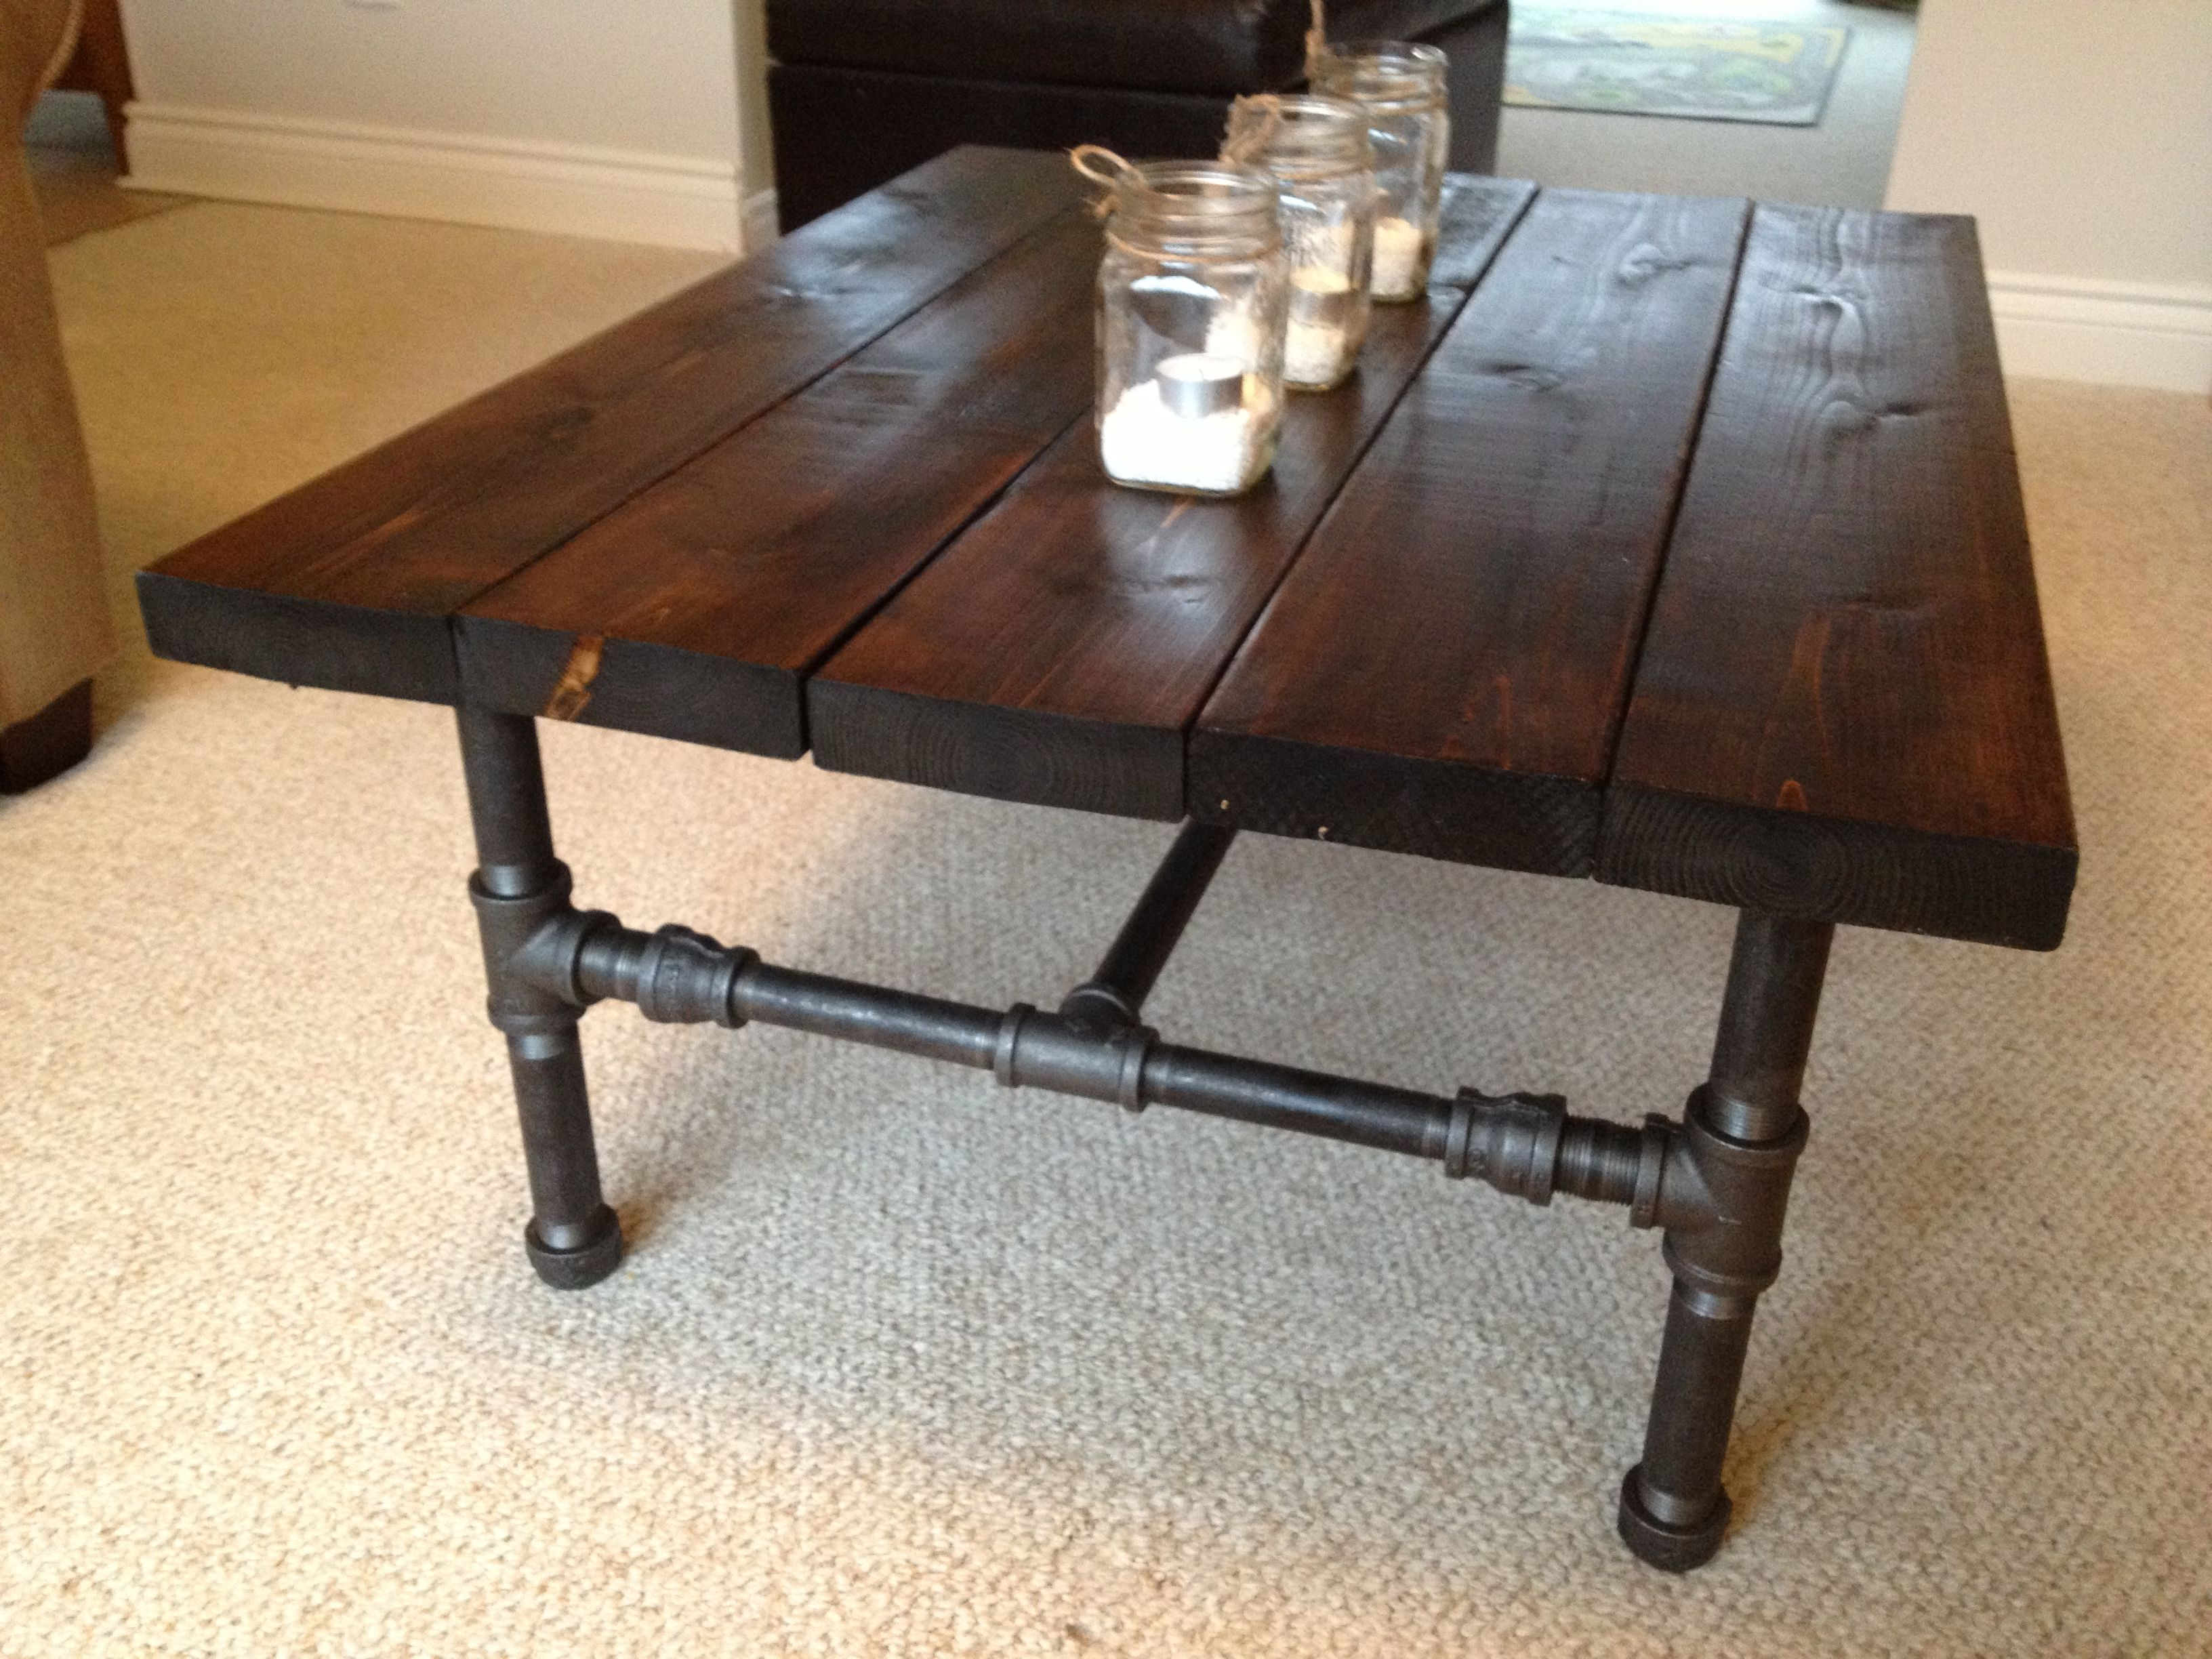 Coffee (Table) Required | DIY Home Projects | Pinterest ...